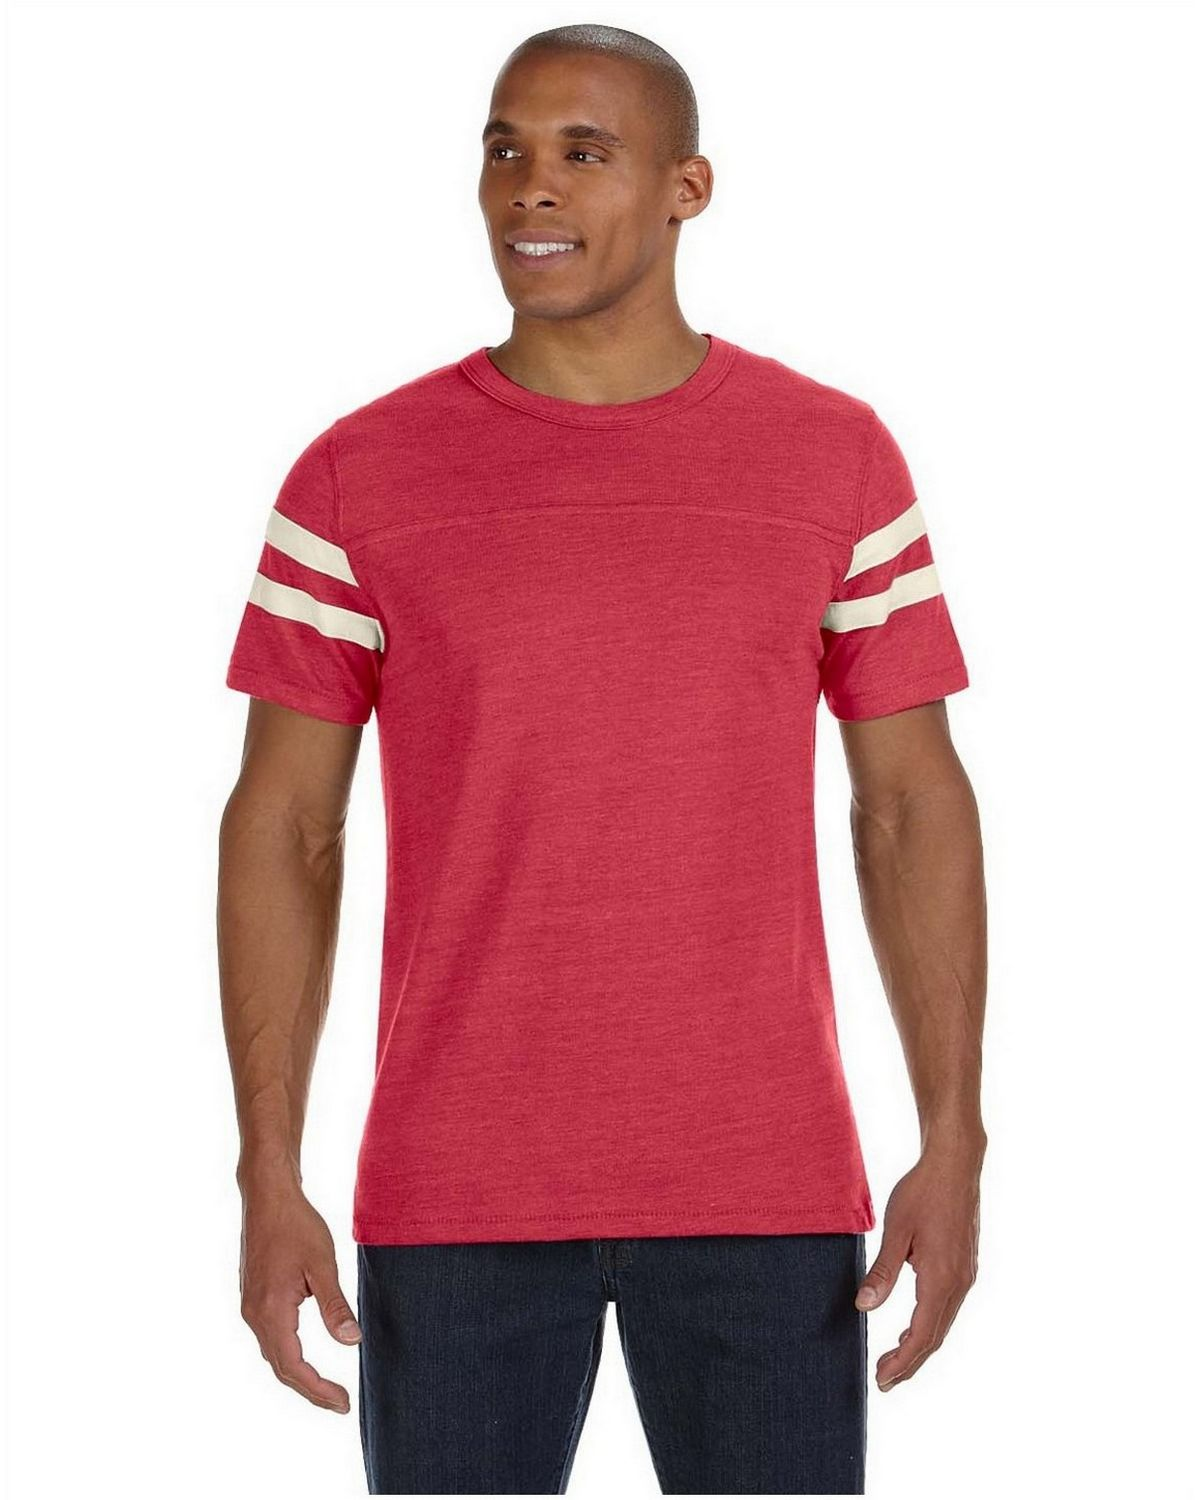 Alternative 12150E1 Eco-Football Tee - Ec Tr Red/Ec Ivry - S 12150E1